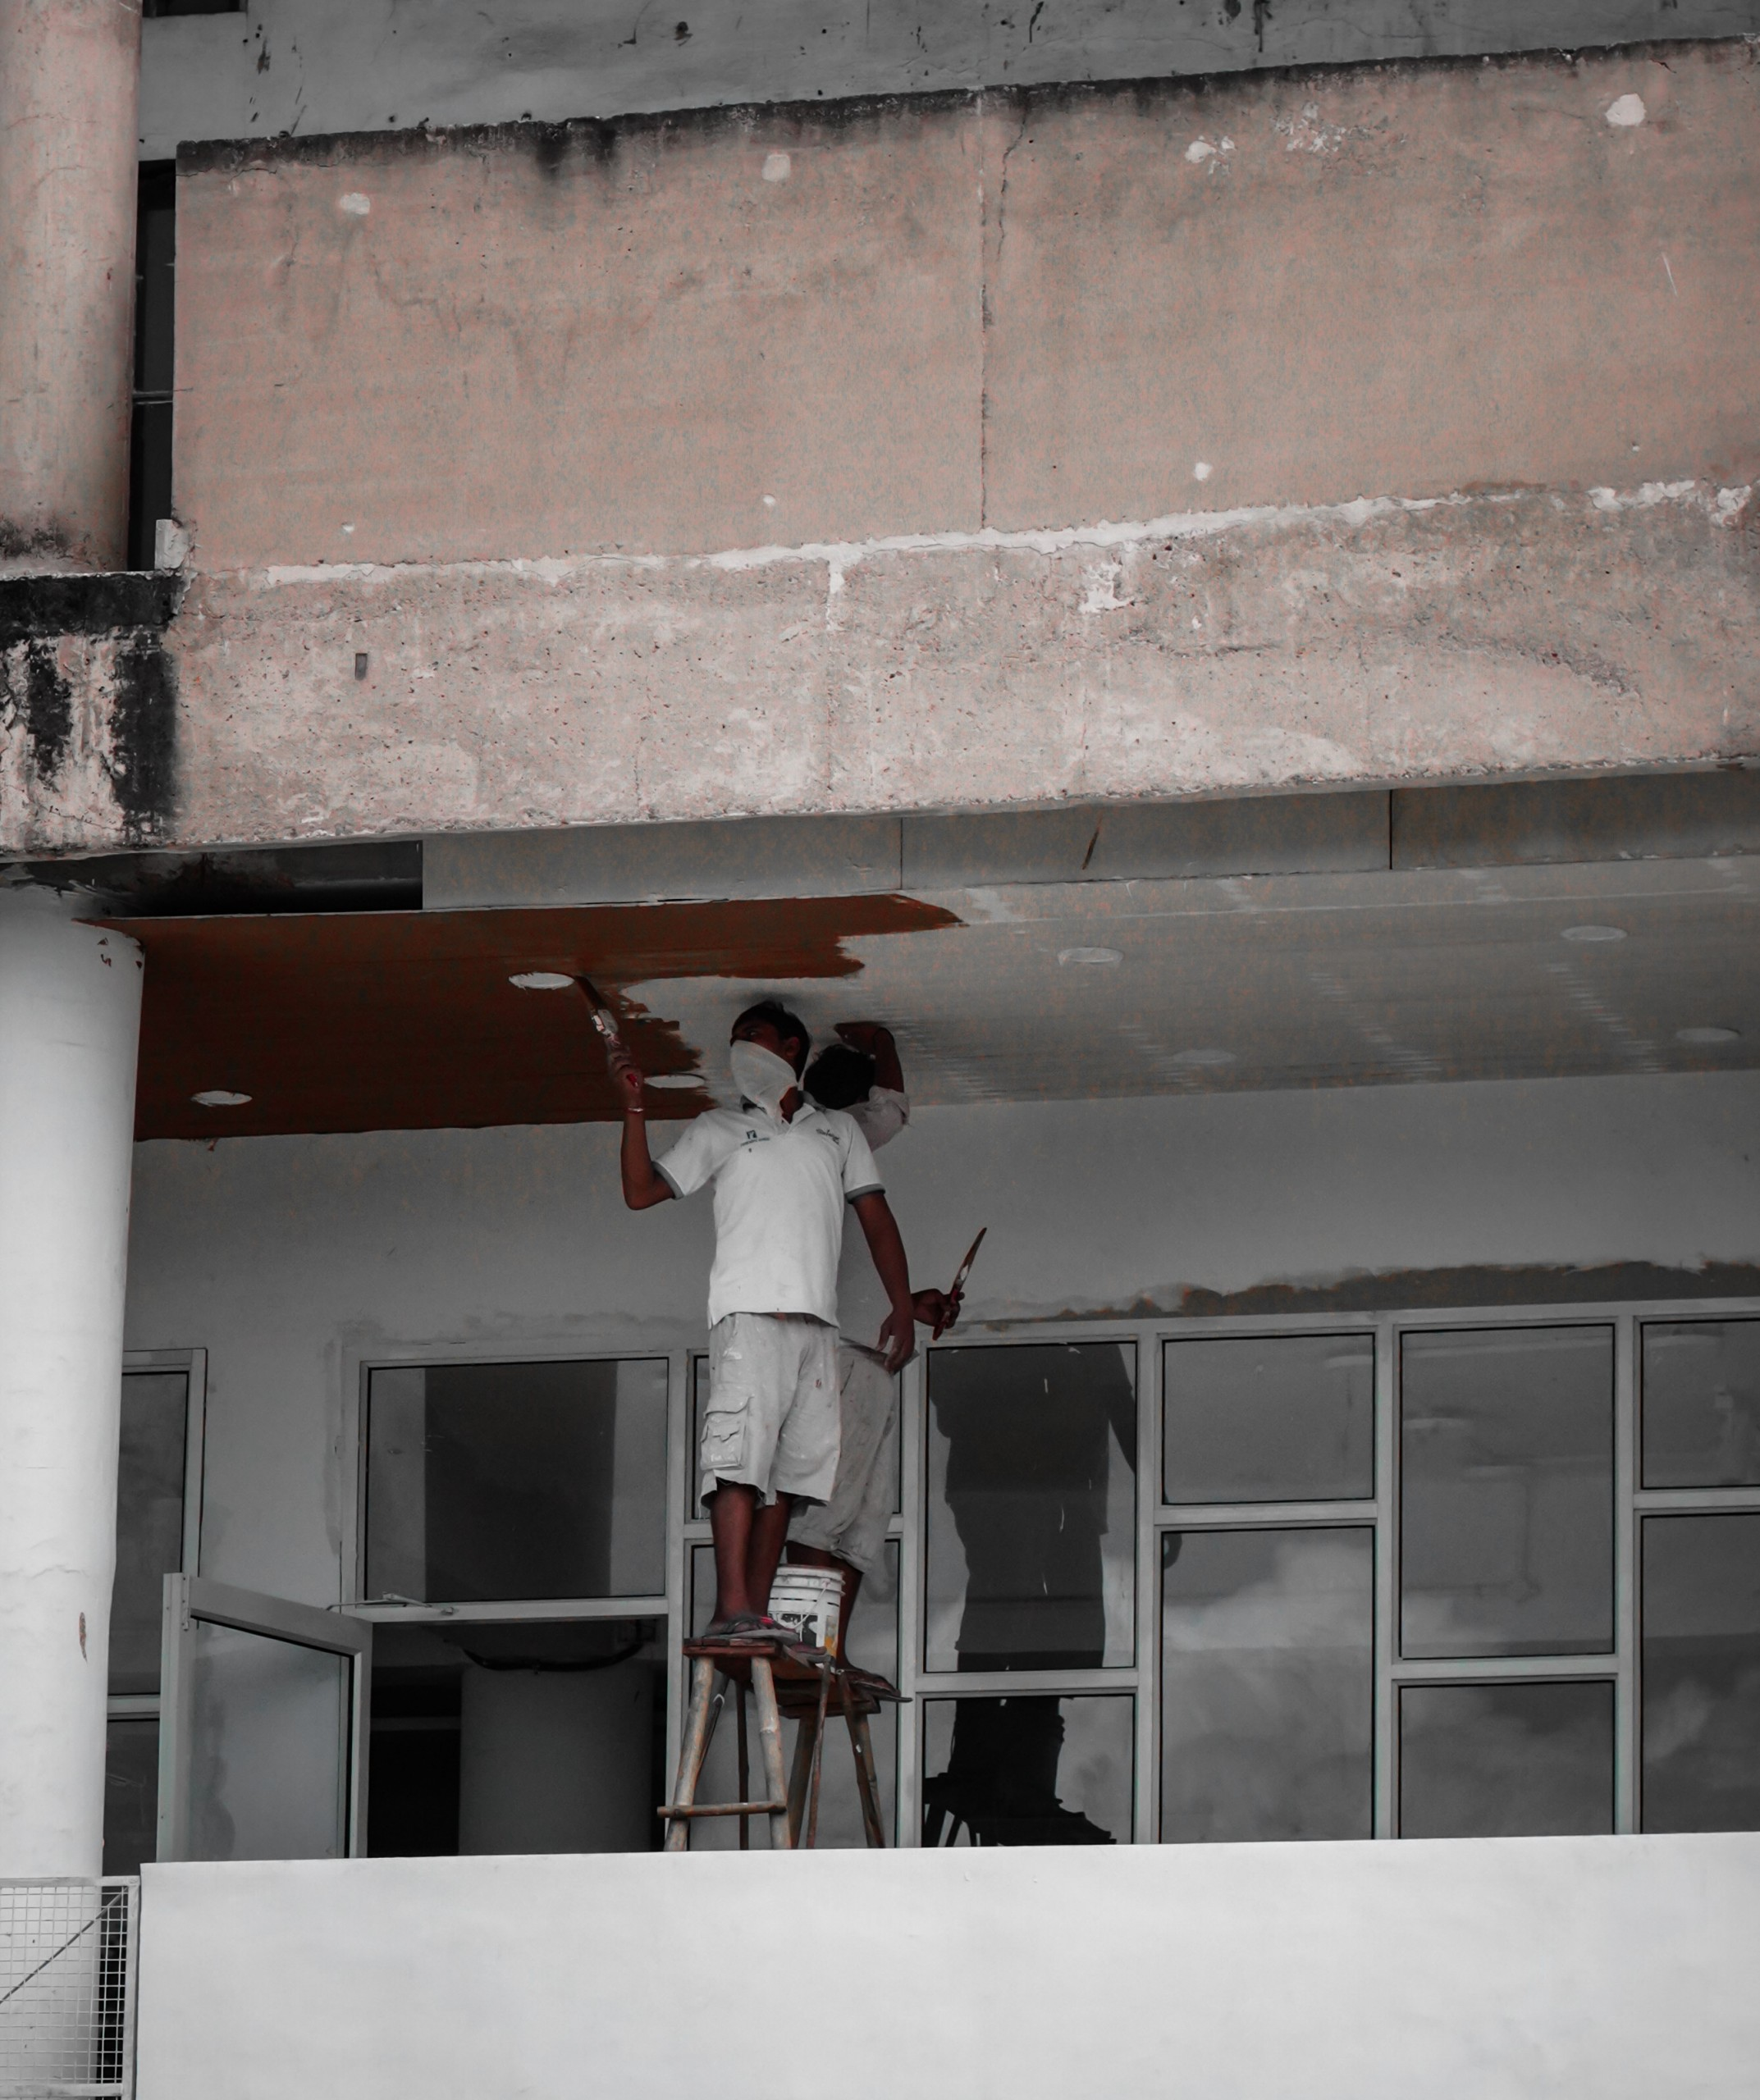 Painters painting a ceiling